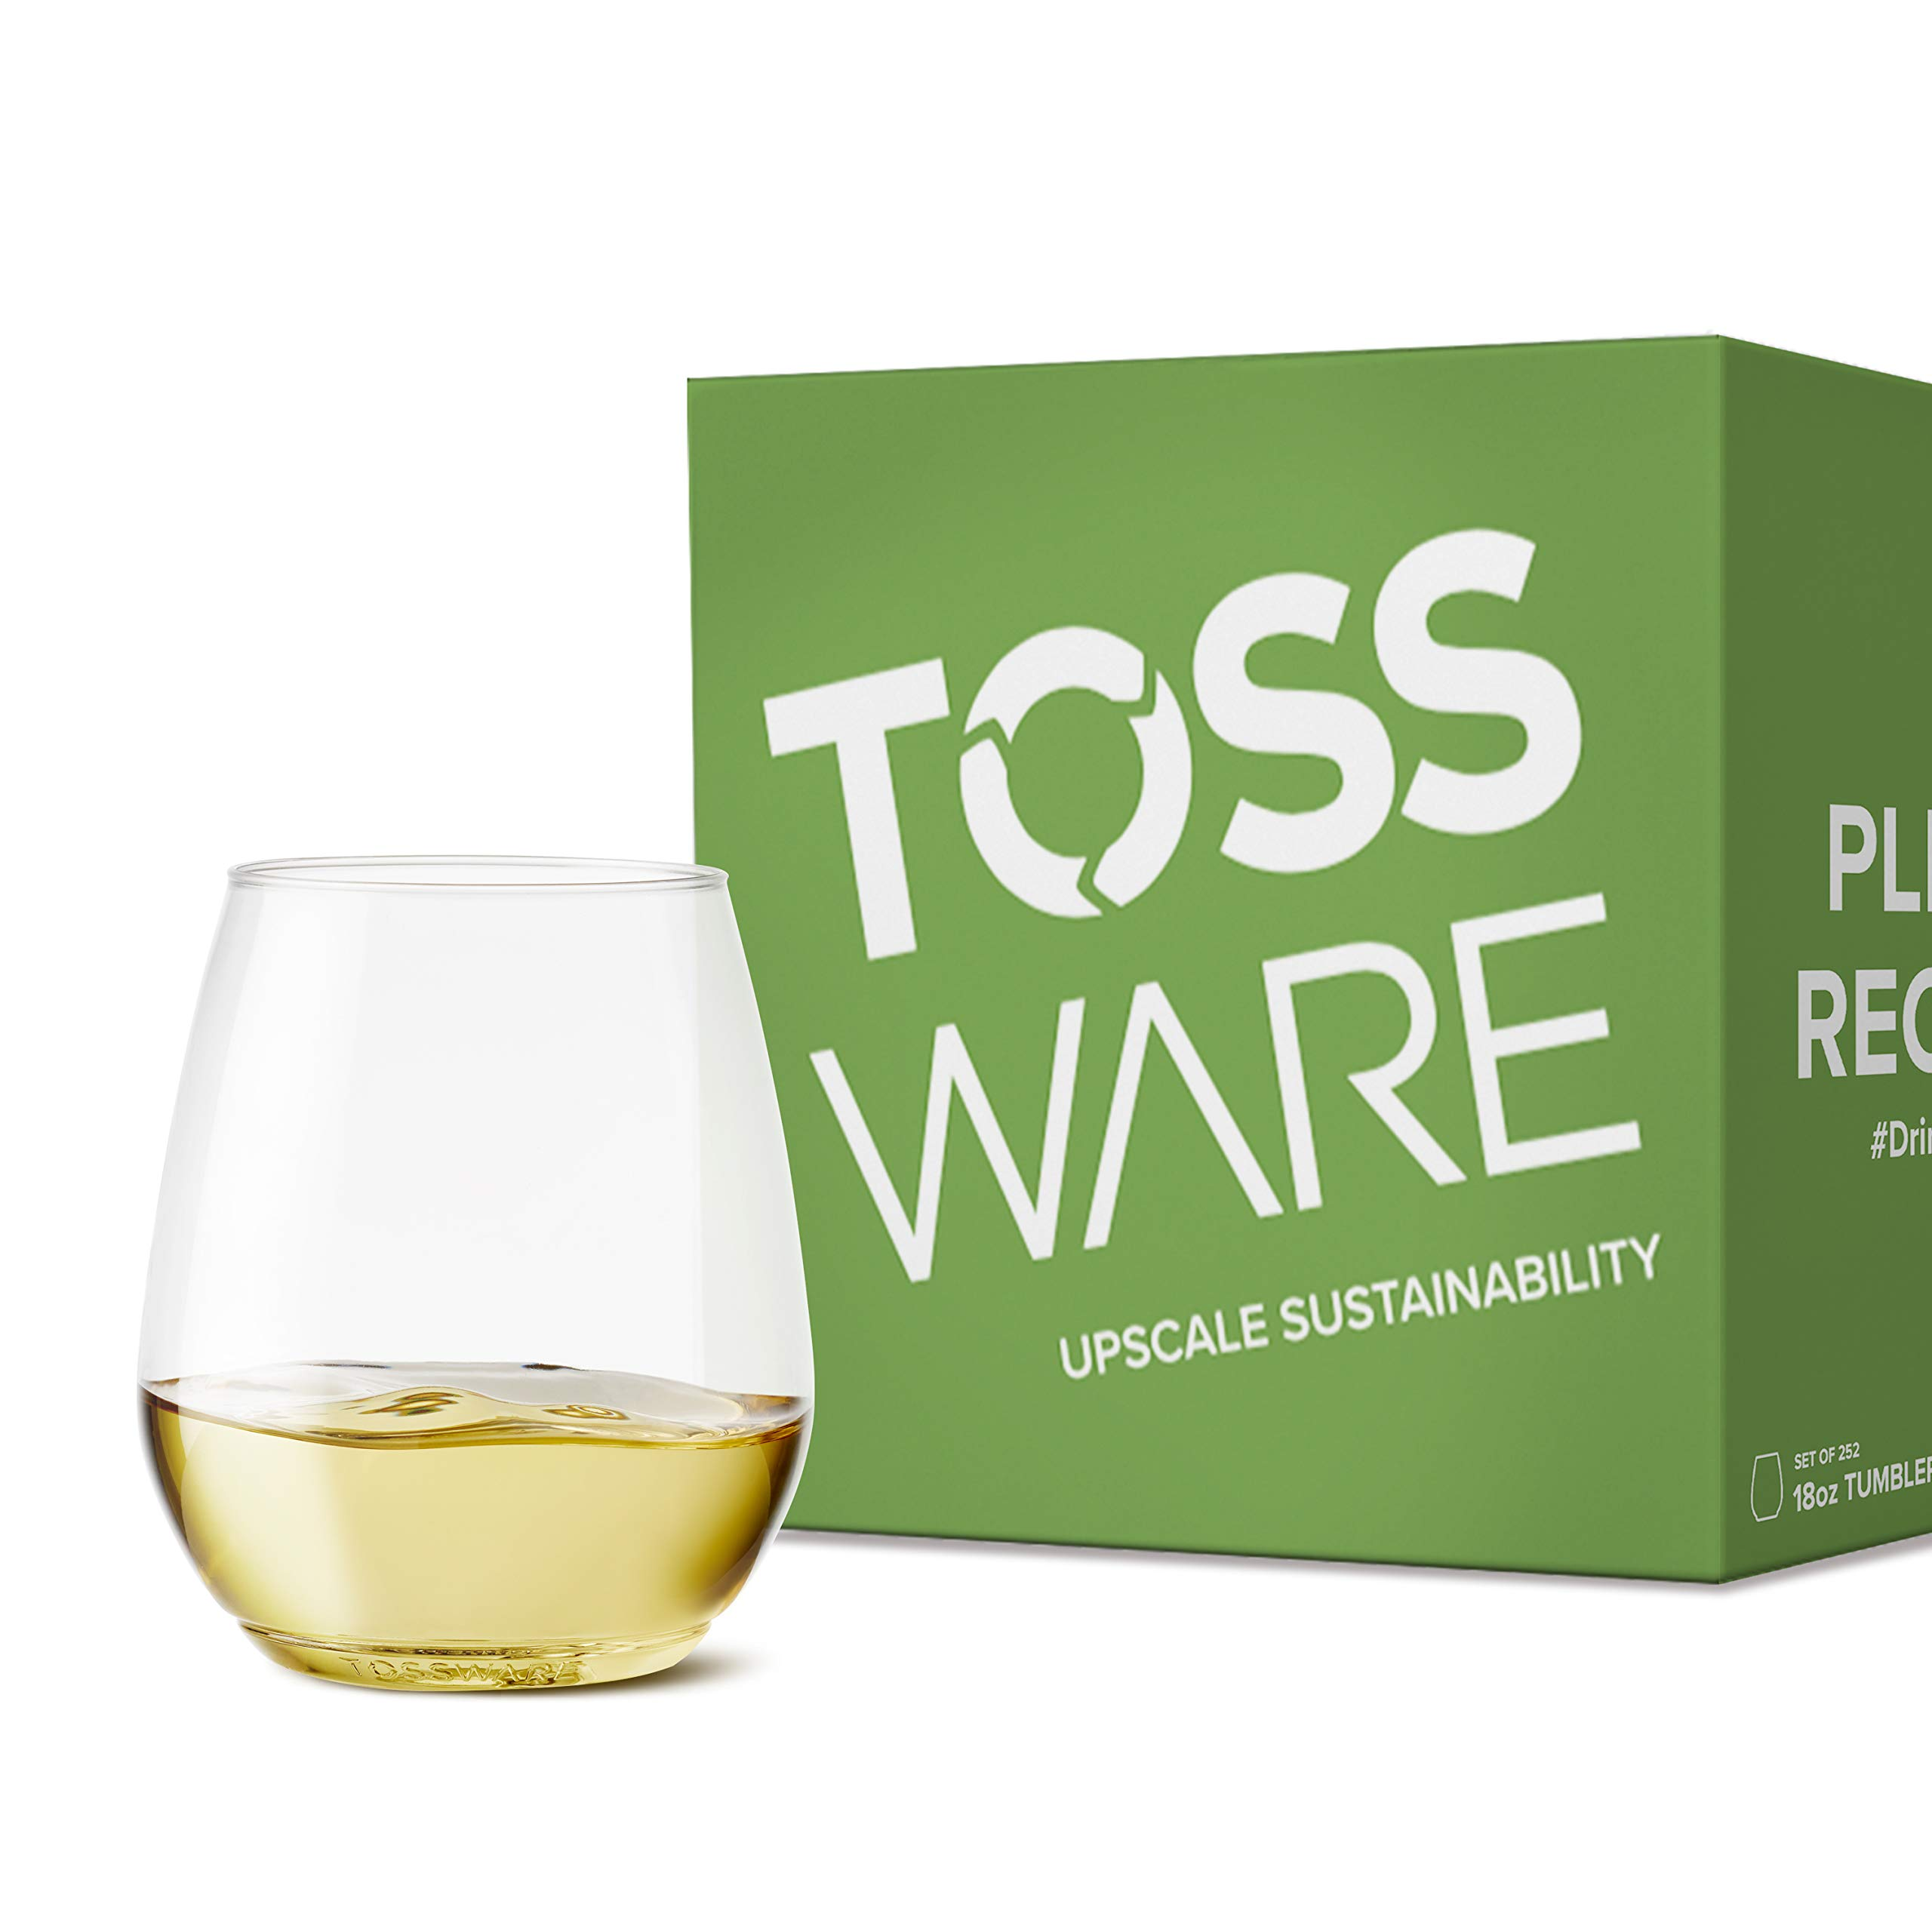 TOSSWARE 18oz Tumbler Recyclable Plastic Cup-Set of 252-stemless, shatterproof and BPA-Free Wine Glasses, Clear